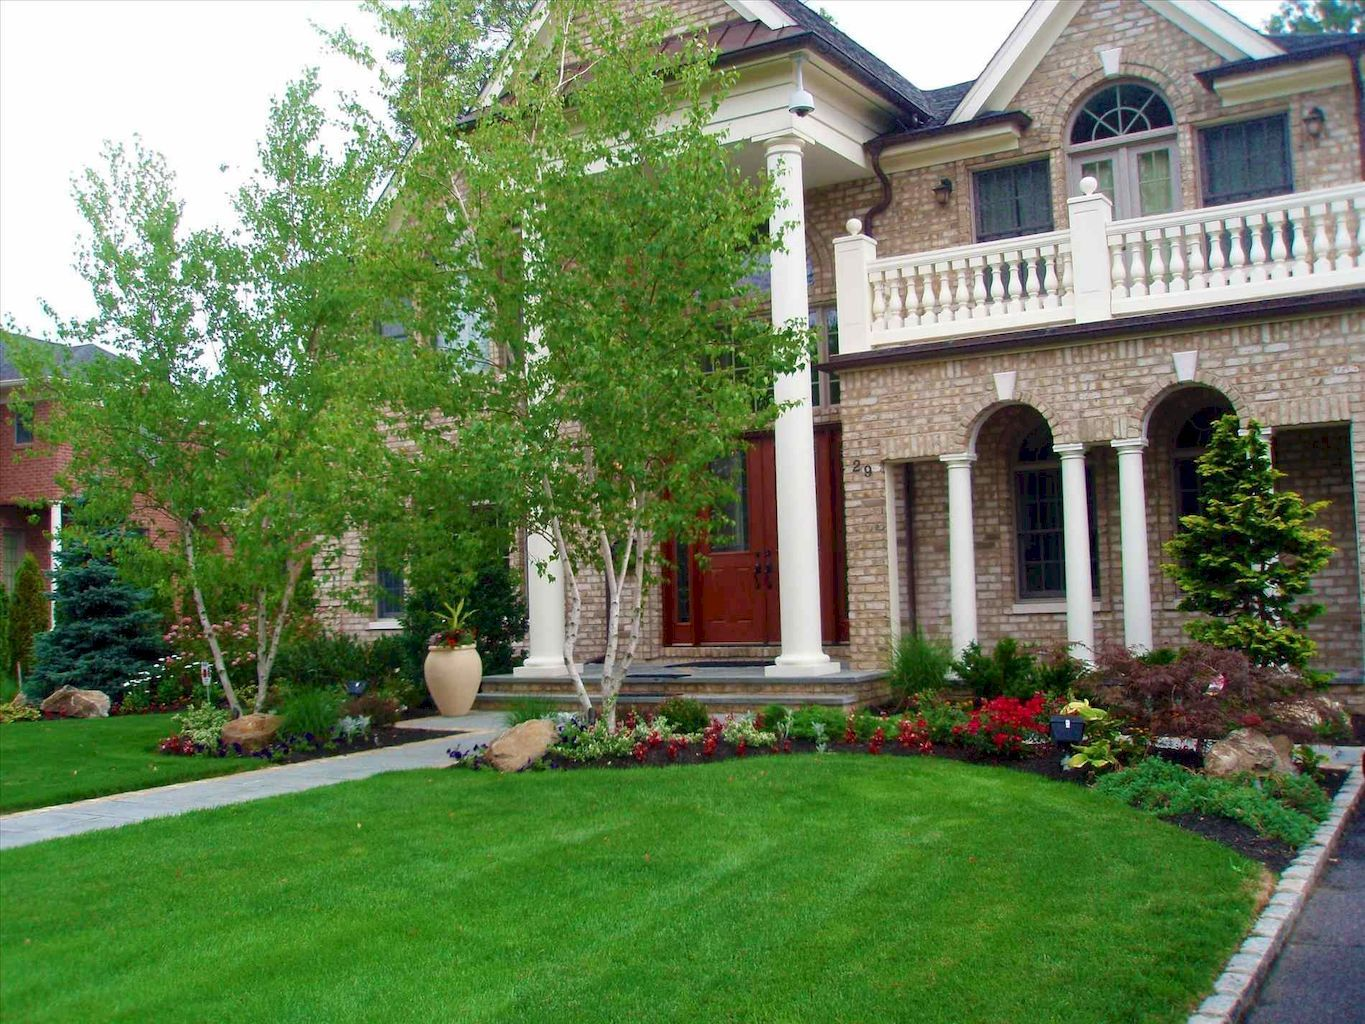 Gorgeous 52 Green And Elegant Front Yard Landscaping Ideas Https Buildecor Co 01